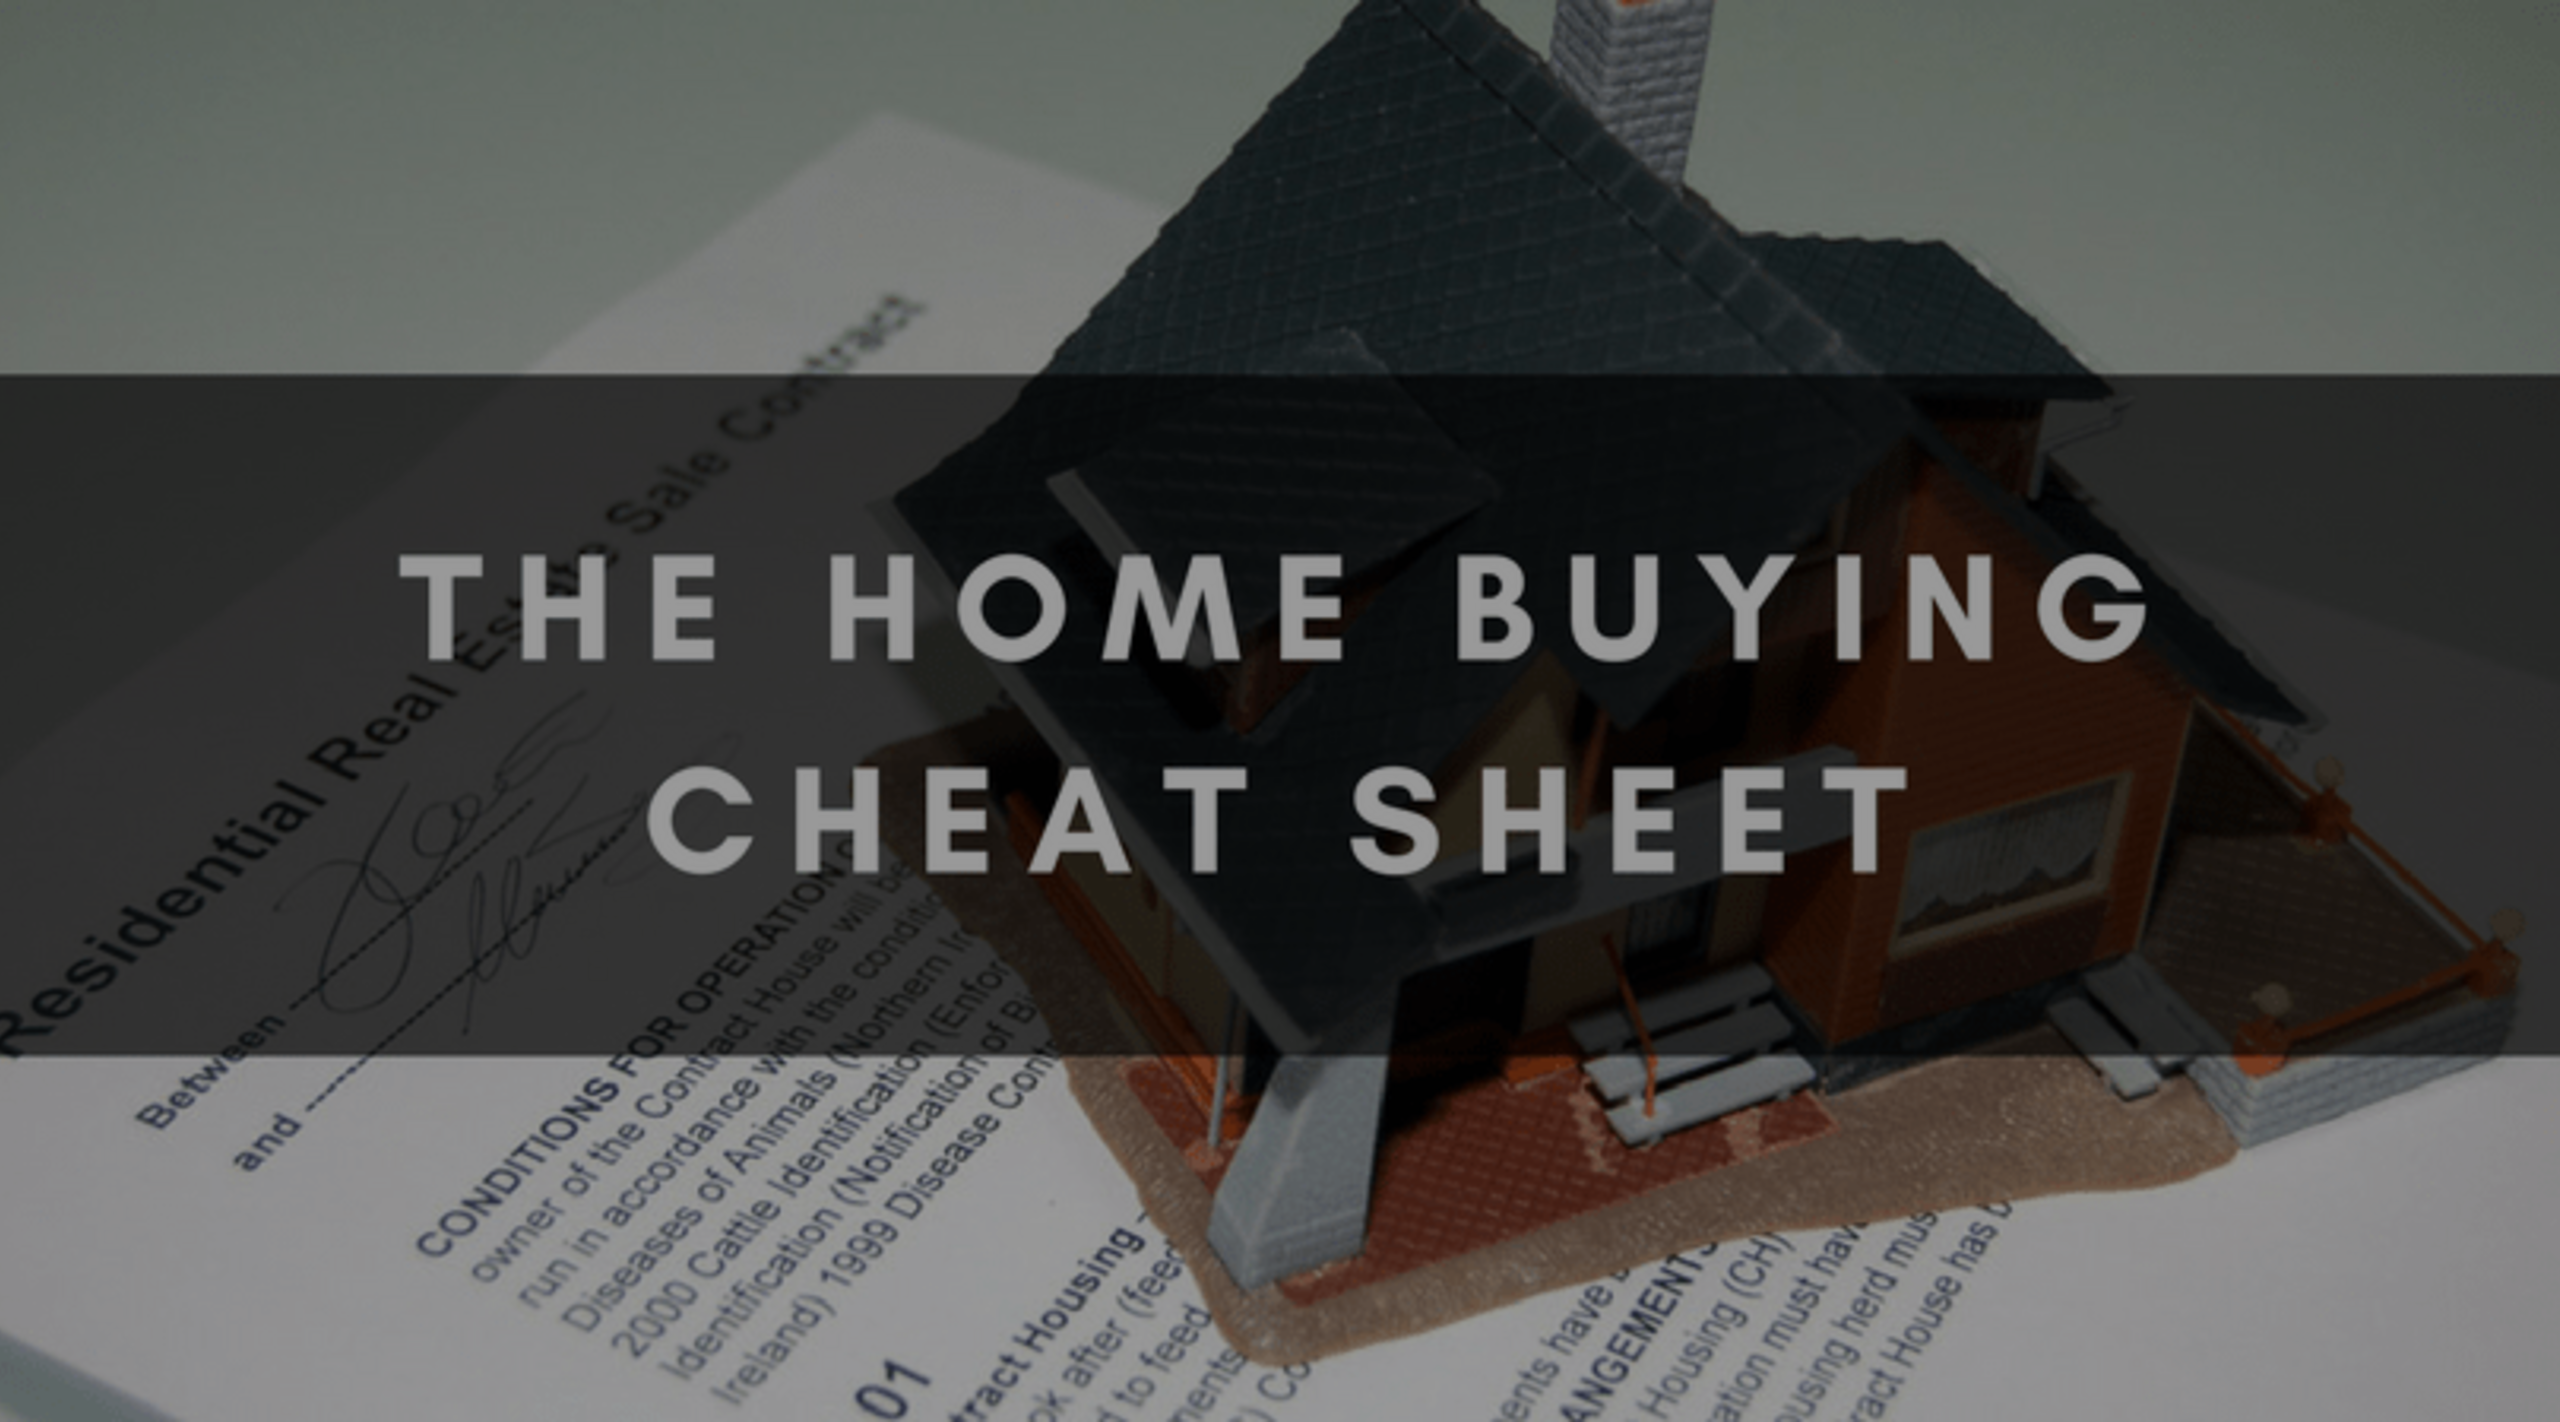 THE HOME BUYING CHEAT SHEET